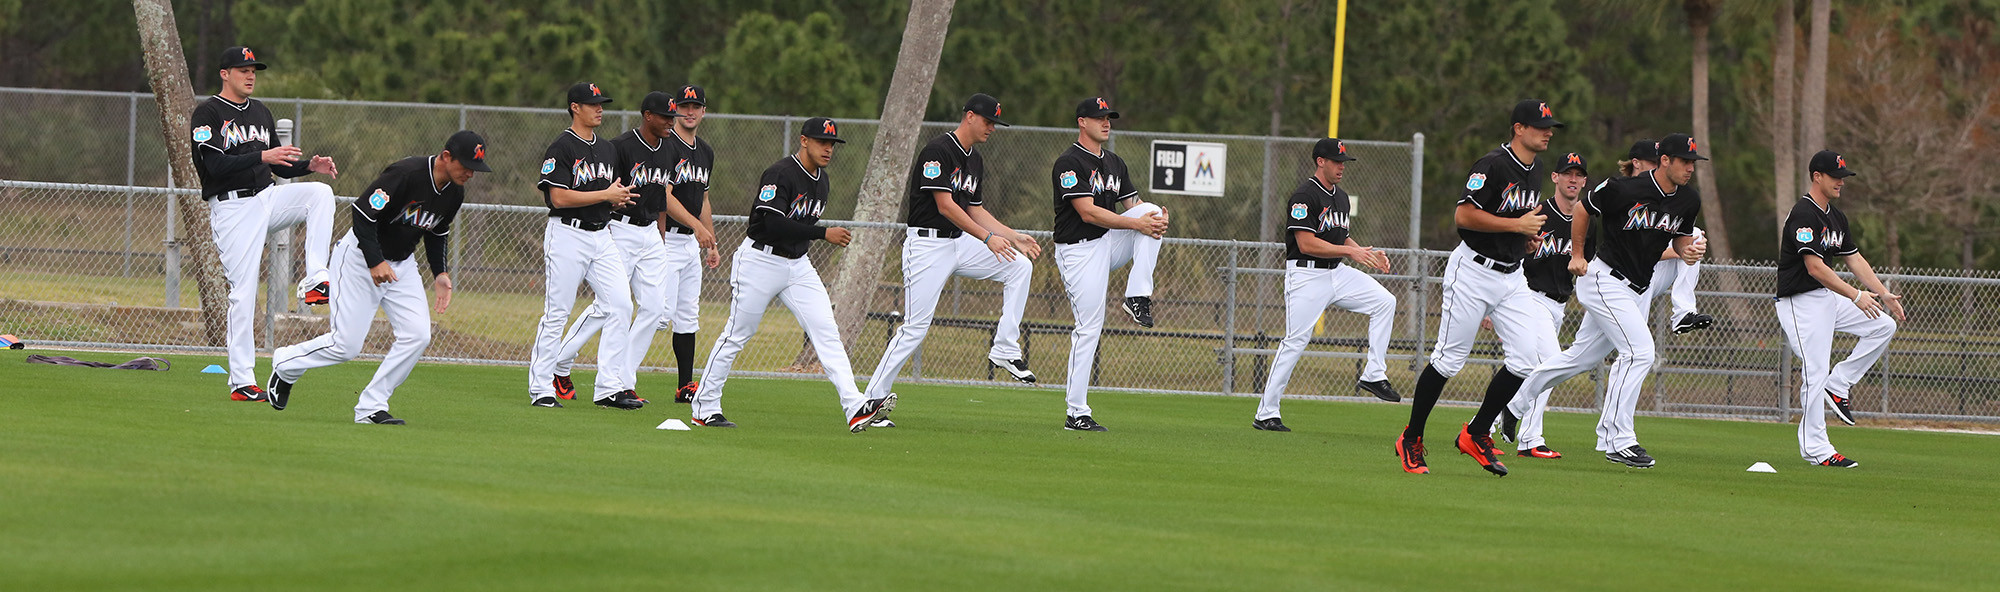 Fl-marlins-spring-training-invites-0113-20170112